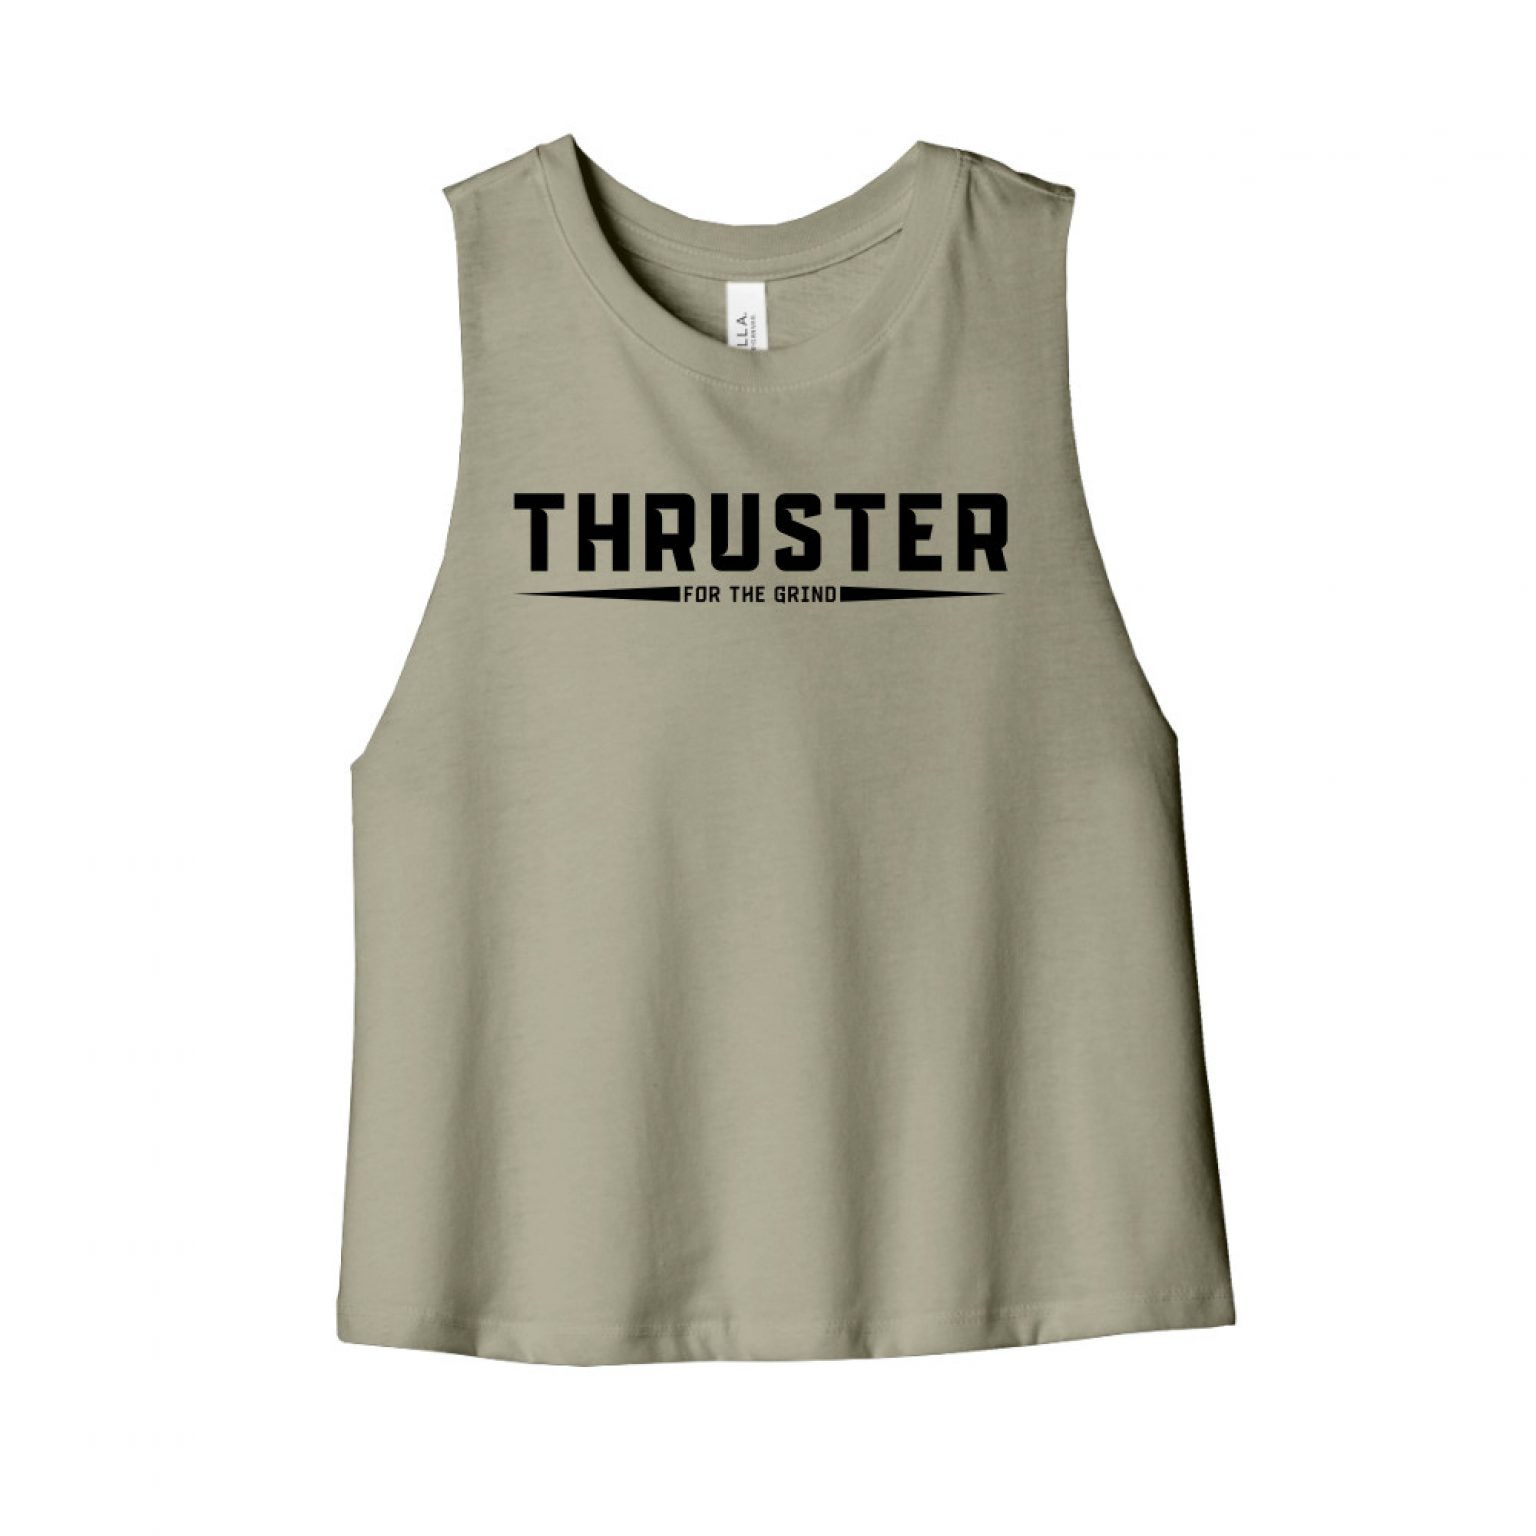 Thruster cropped military